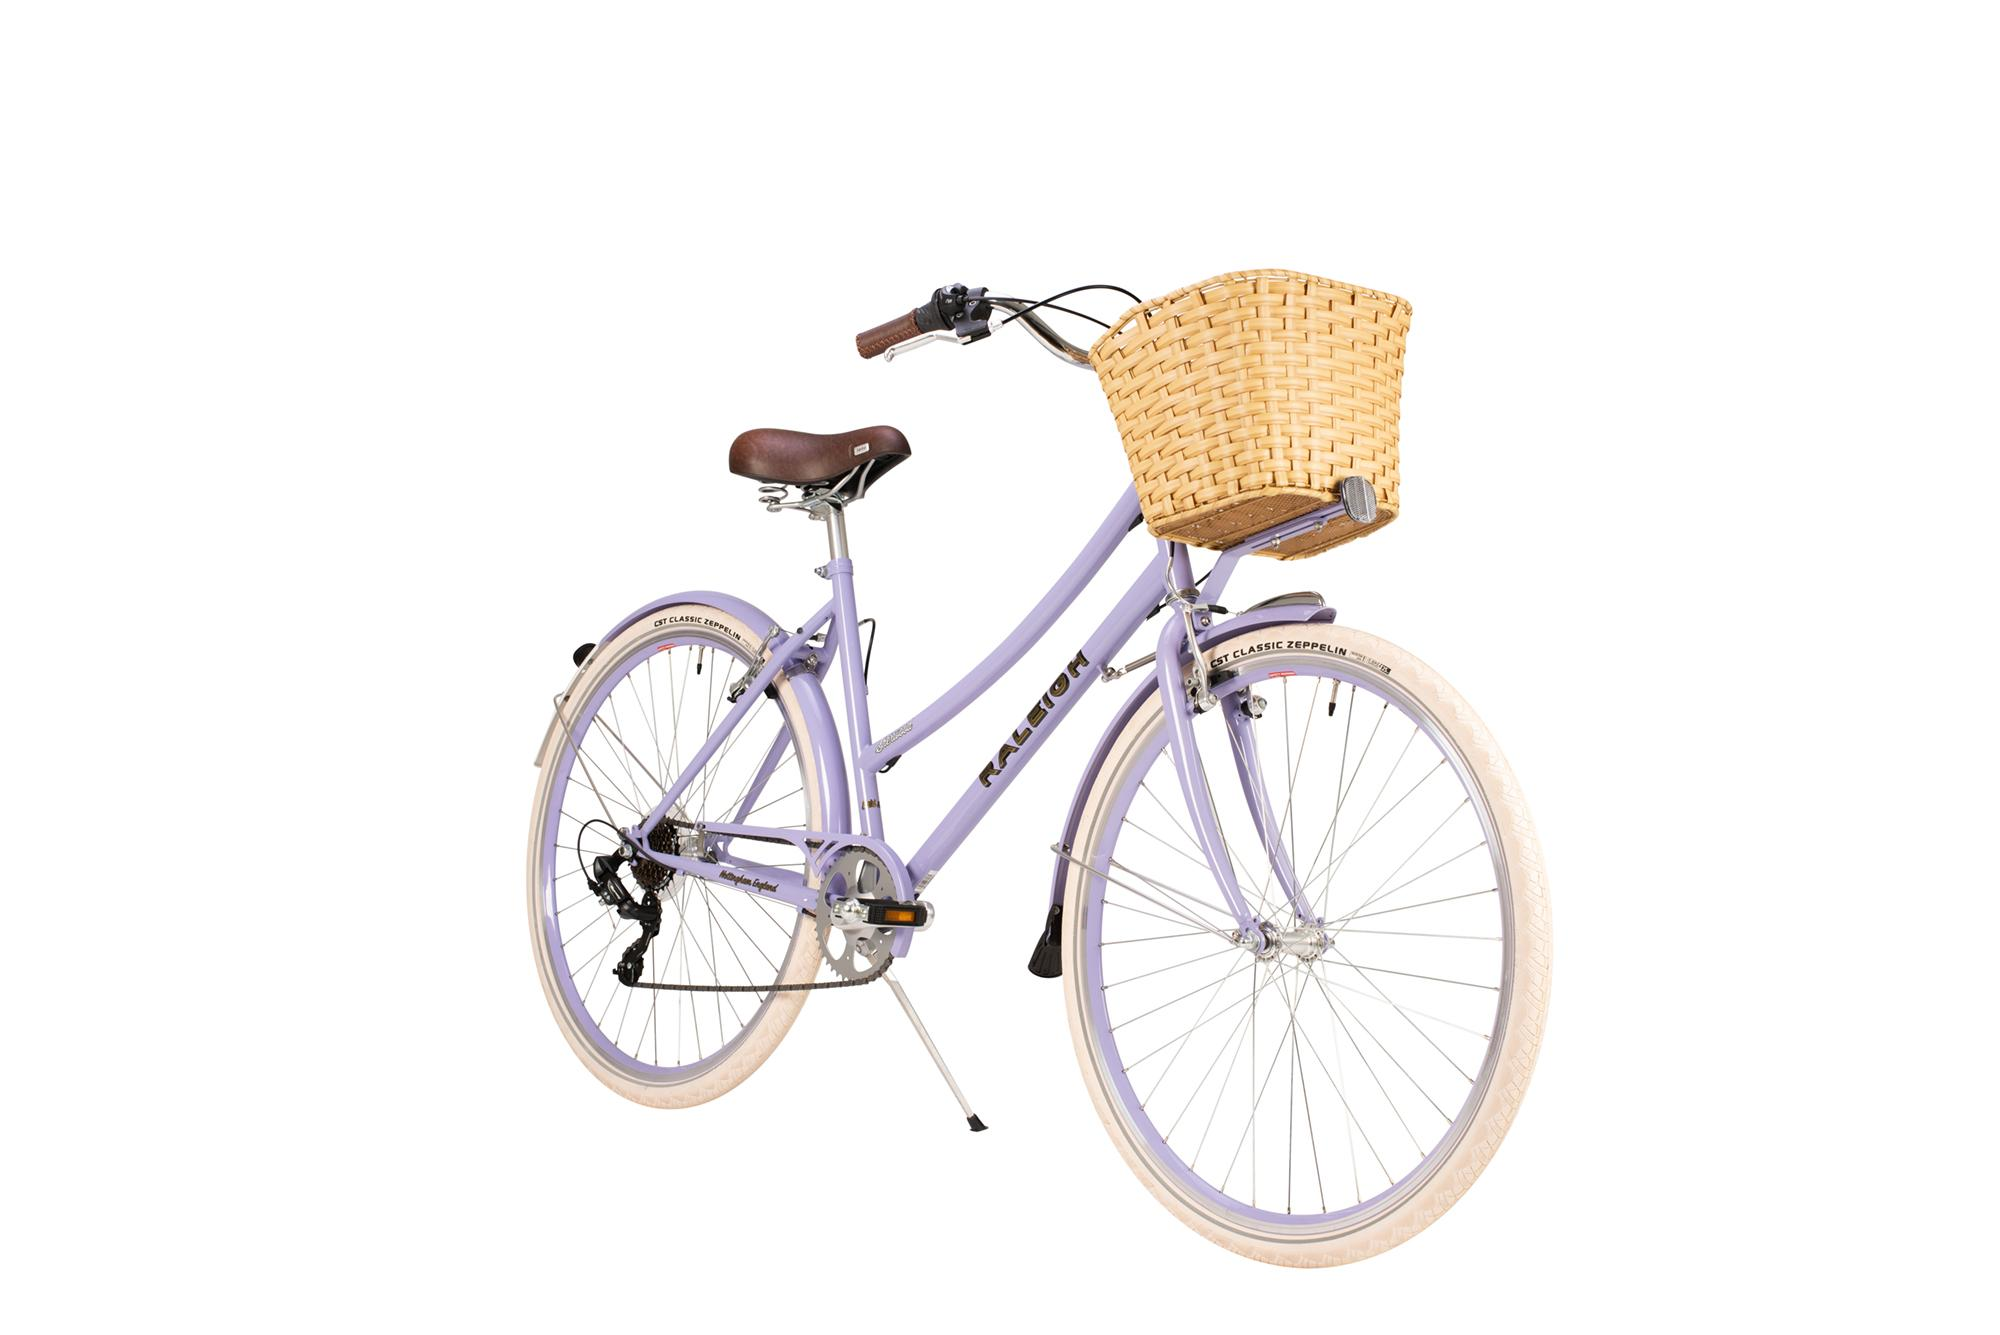 Front view of Raleigh Sherwood classic ladies bike with basket